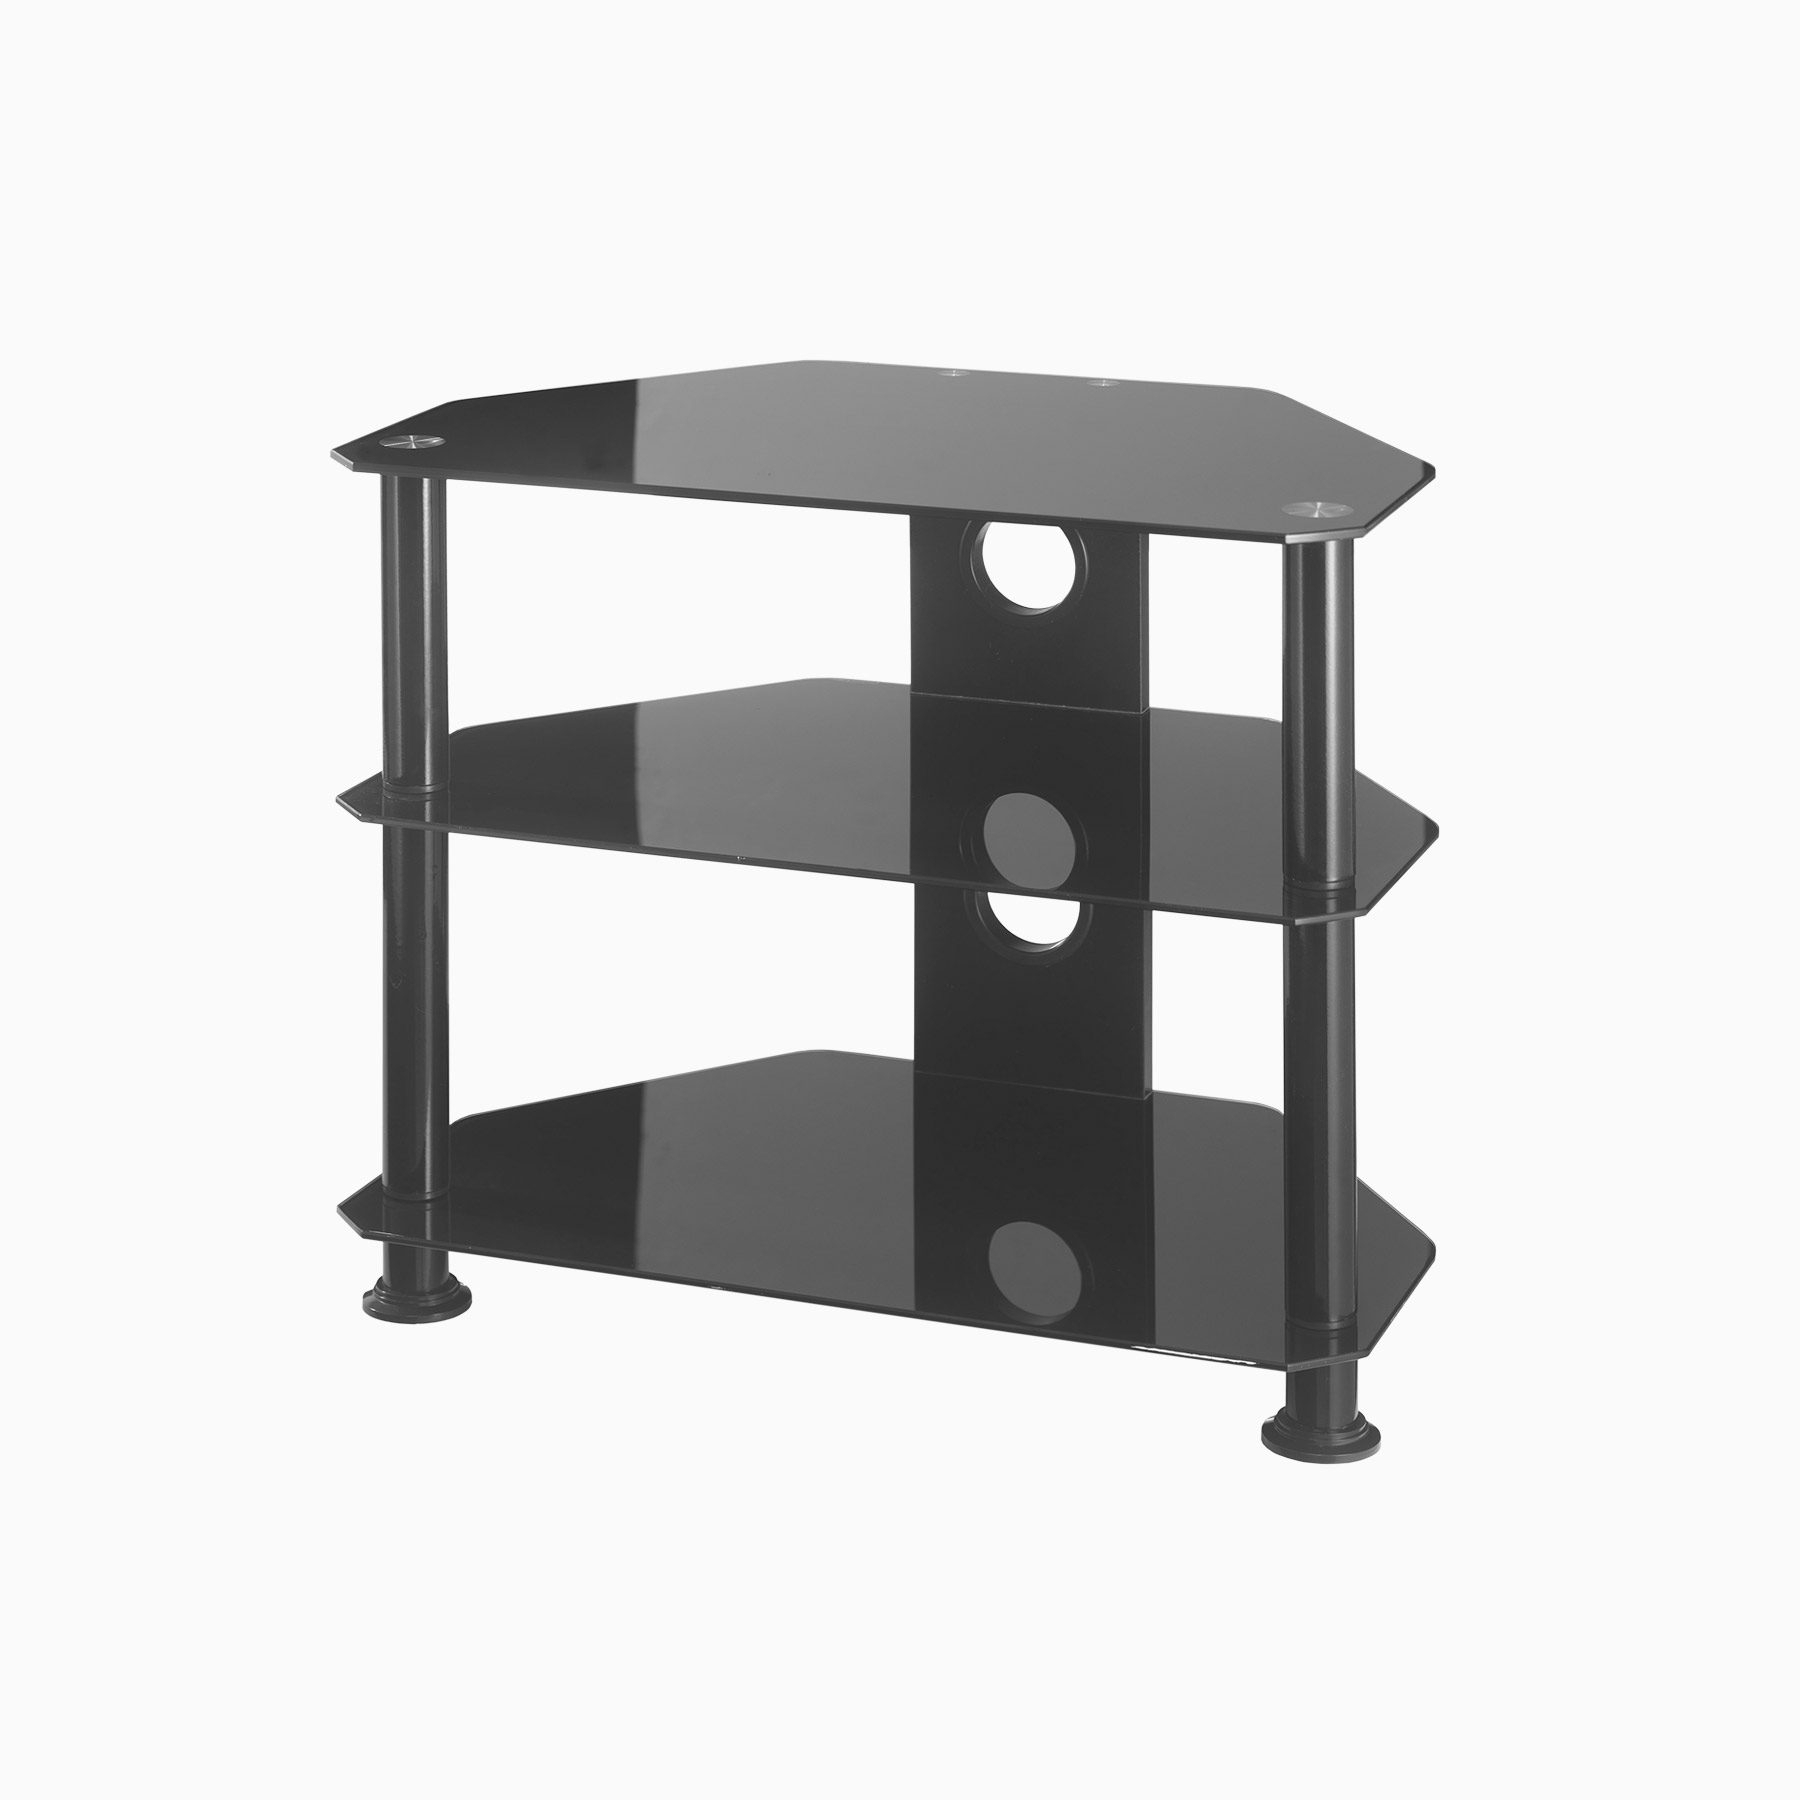 Mmt Db600 Pertaining To Well Known Black Glass Tv Stands (View 16 of 20)